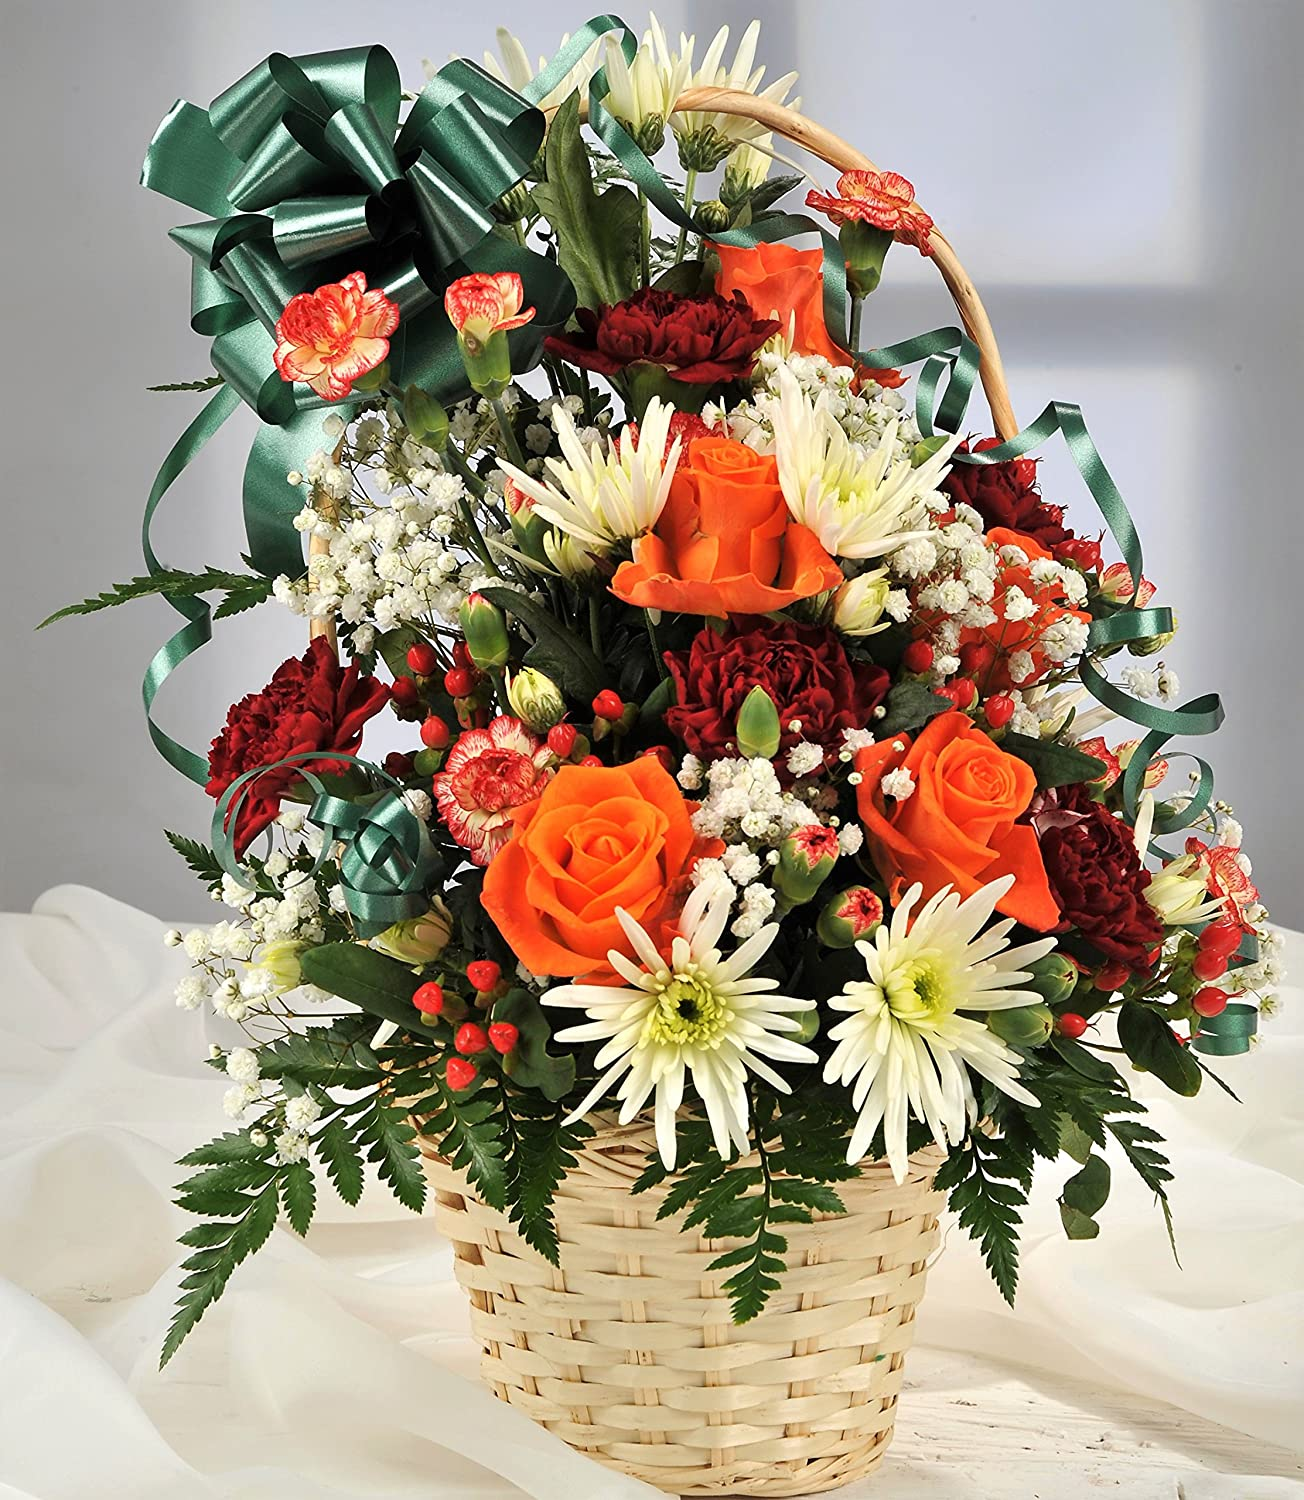 Autumnal Red & Orange Cut Flower Arrangement in Wicker Basket with Handwritten Gift Card - Fresh Flowers Delivered - FREE UK Next Day Delivery in 1hr Time-Slot 7 Days a Week - Front Facing Arrangement Homeland Florists